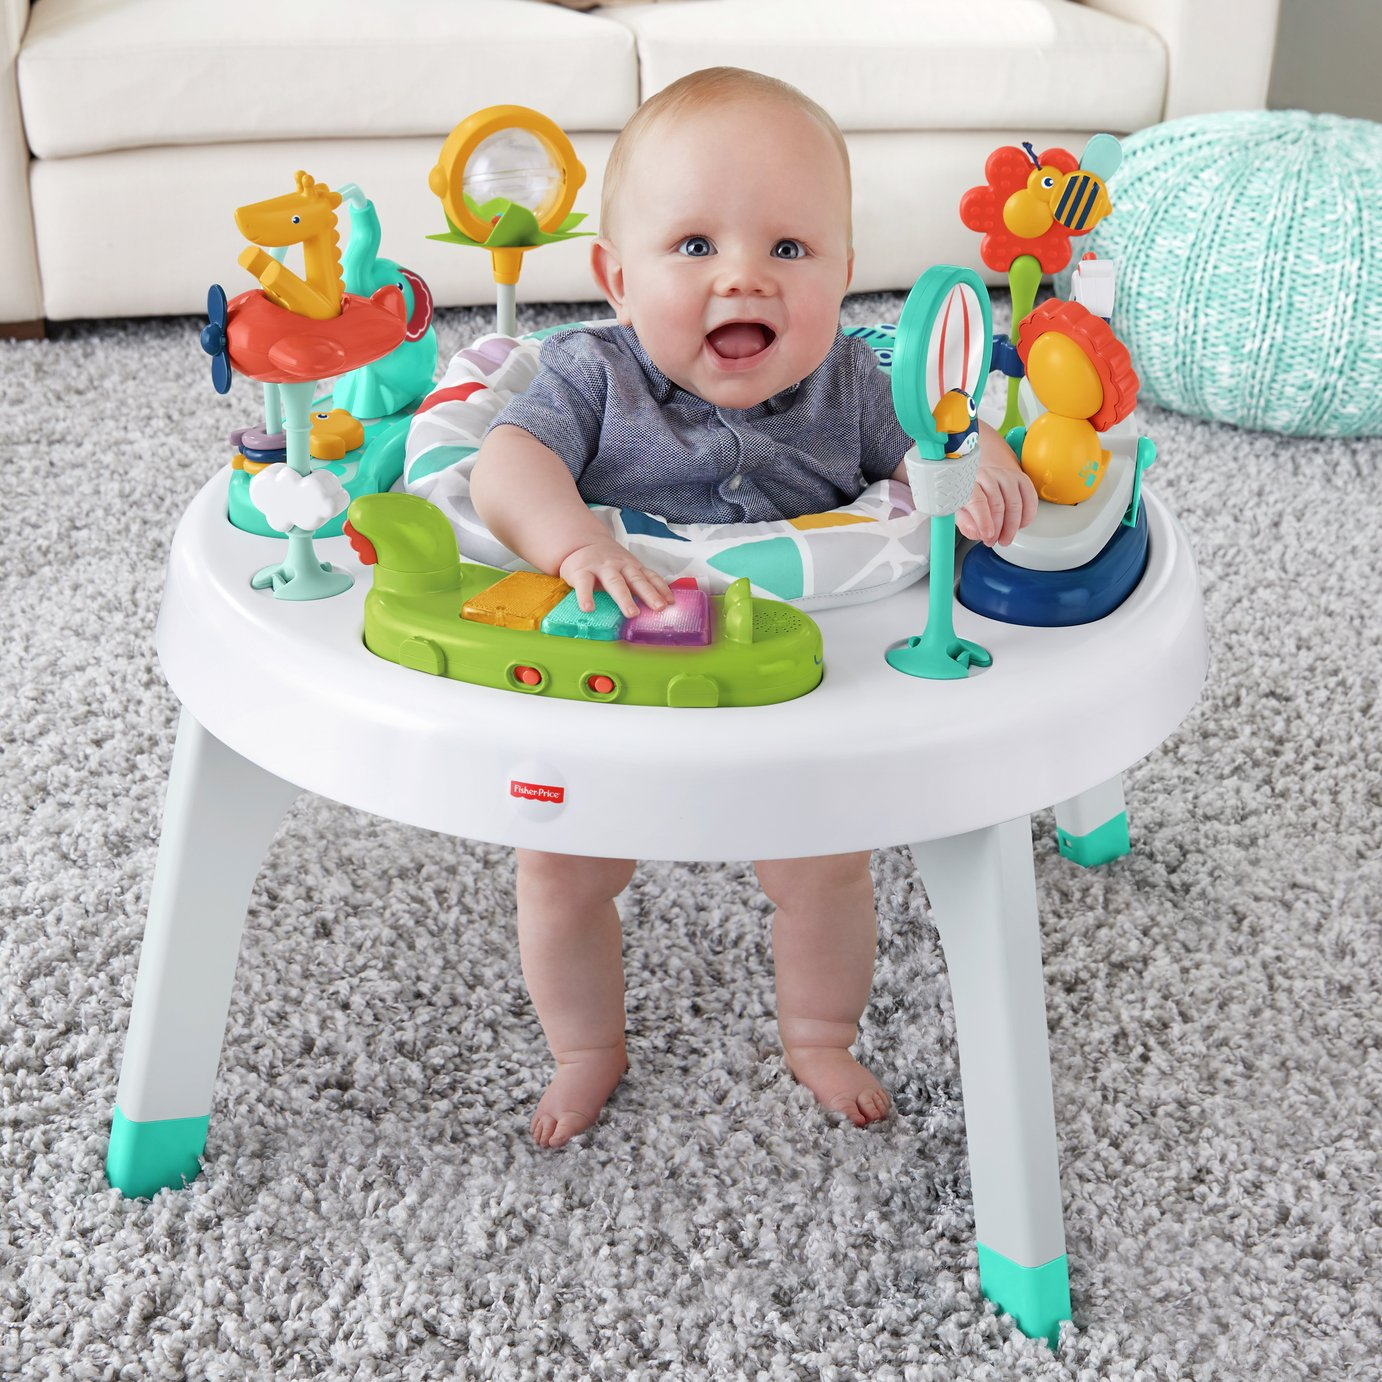 Image of Fisher-Price 2-in-1 Sit-To-Stand Activity Centre